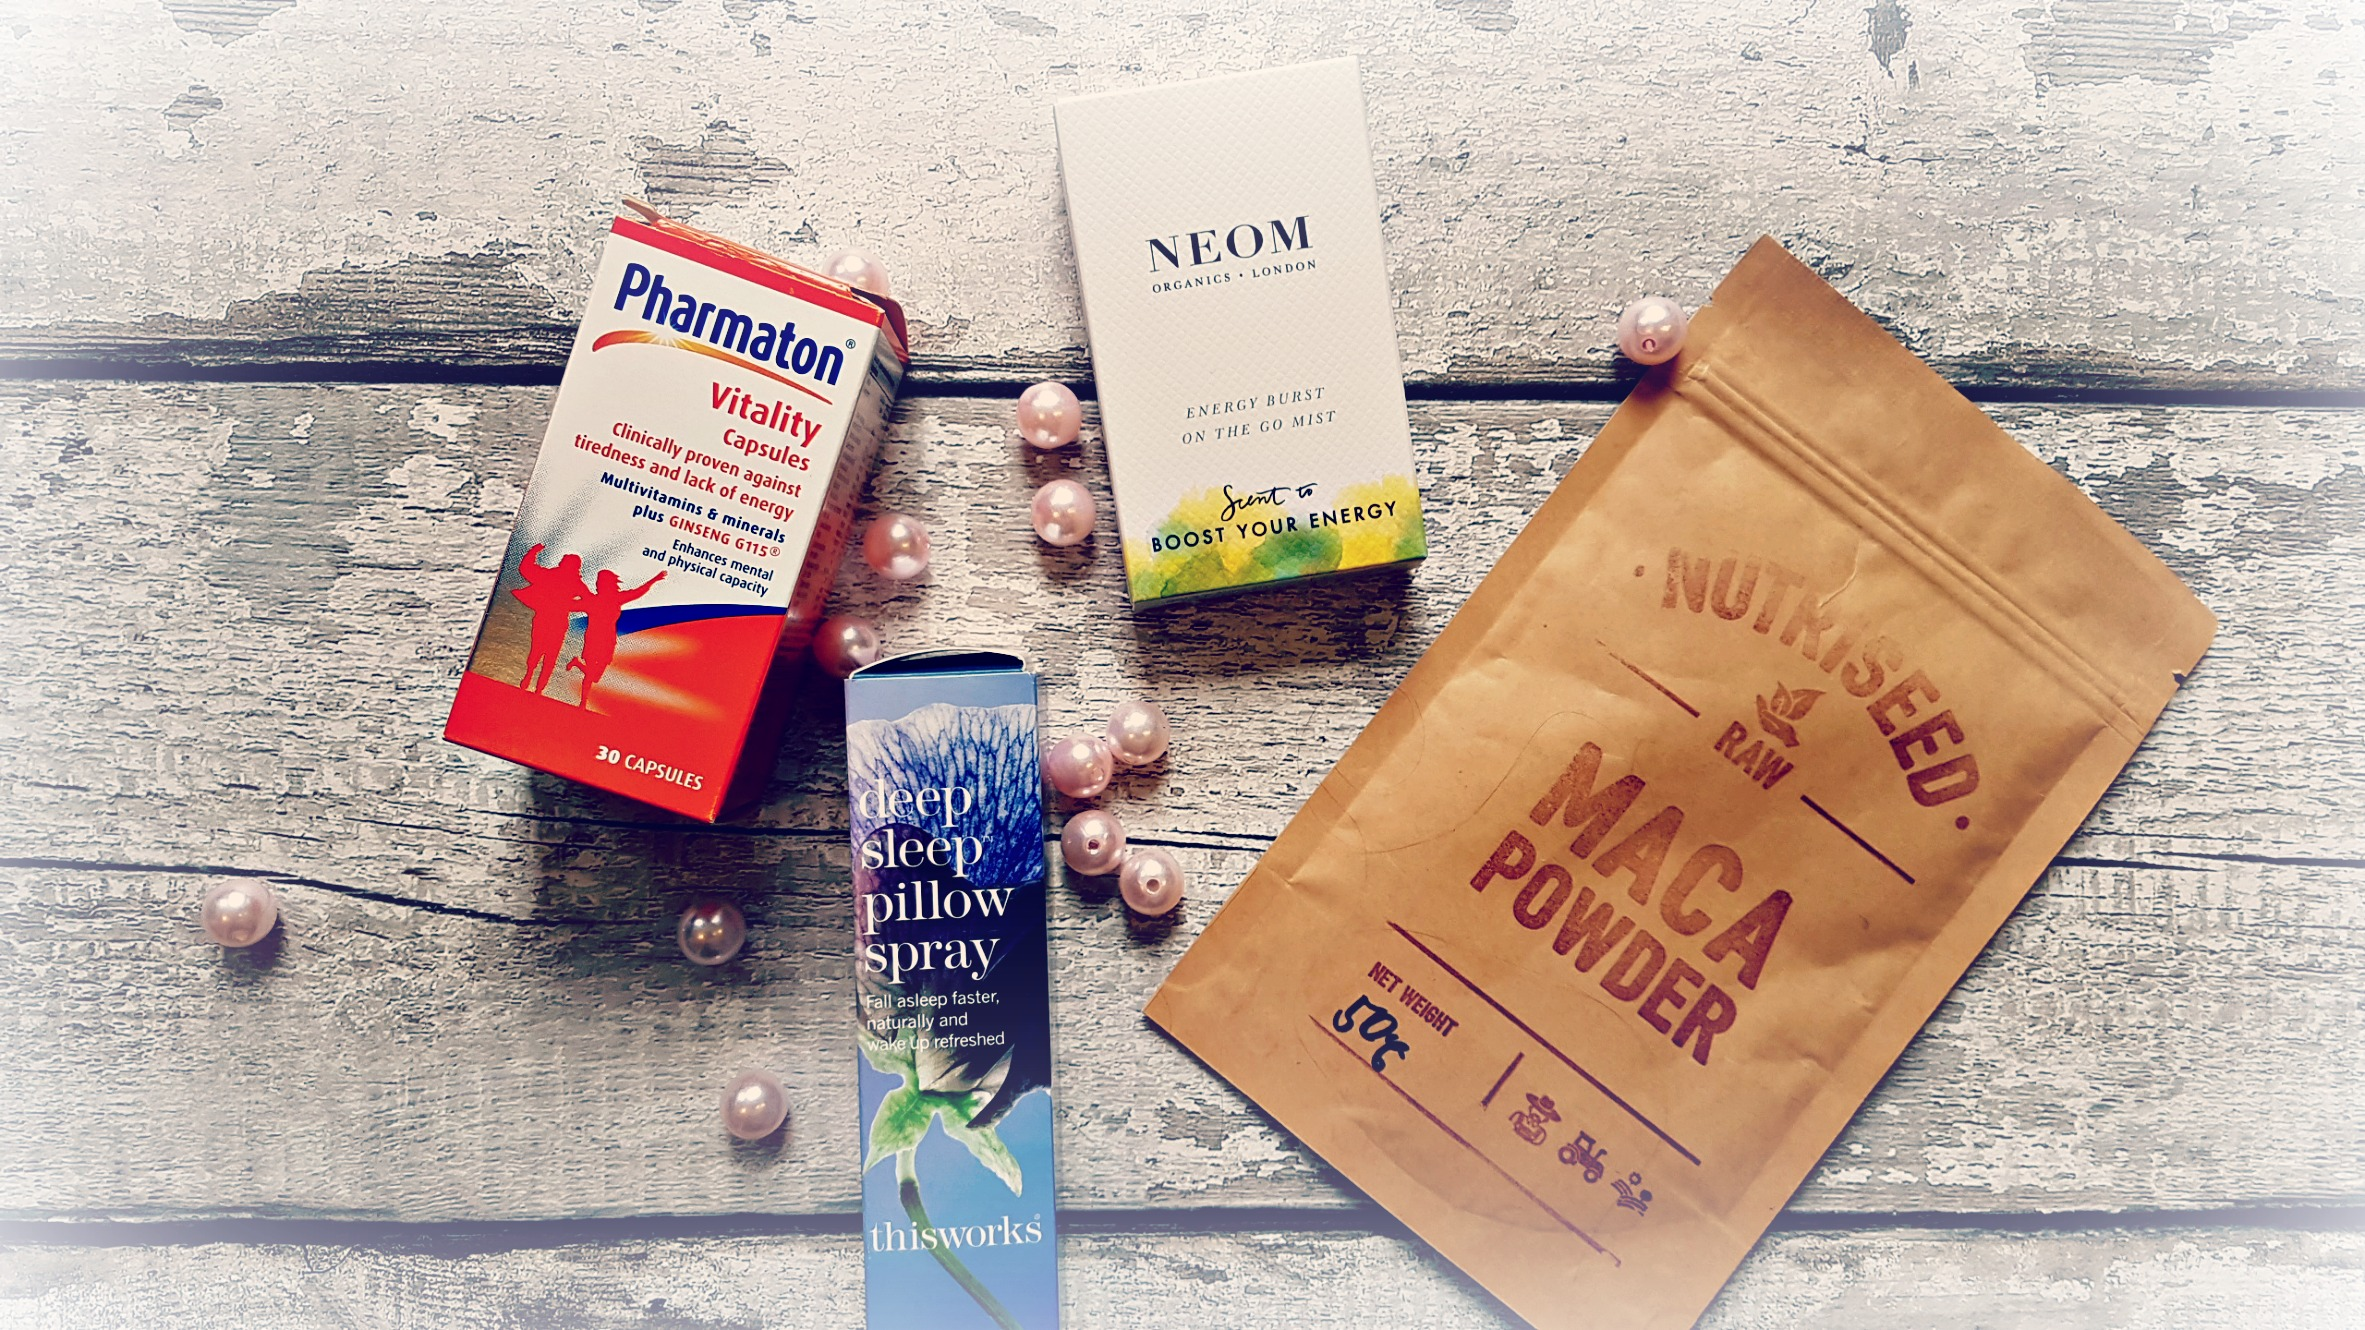 a lfatlay image of pharmaton capsules, sleep spray, maca powder, and neom energising spray